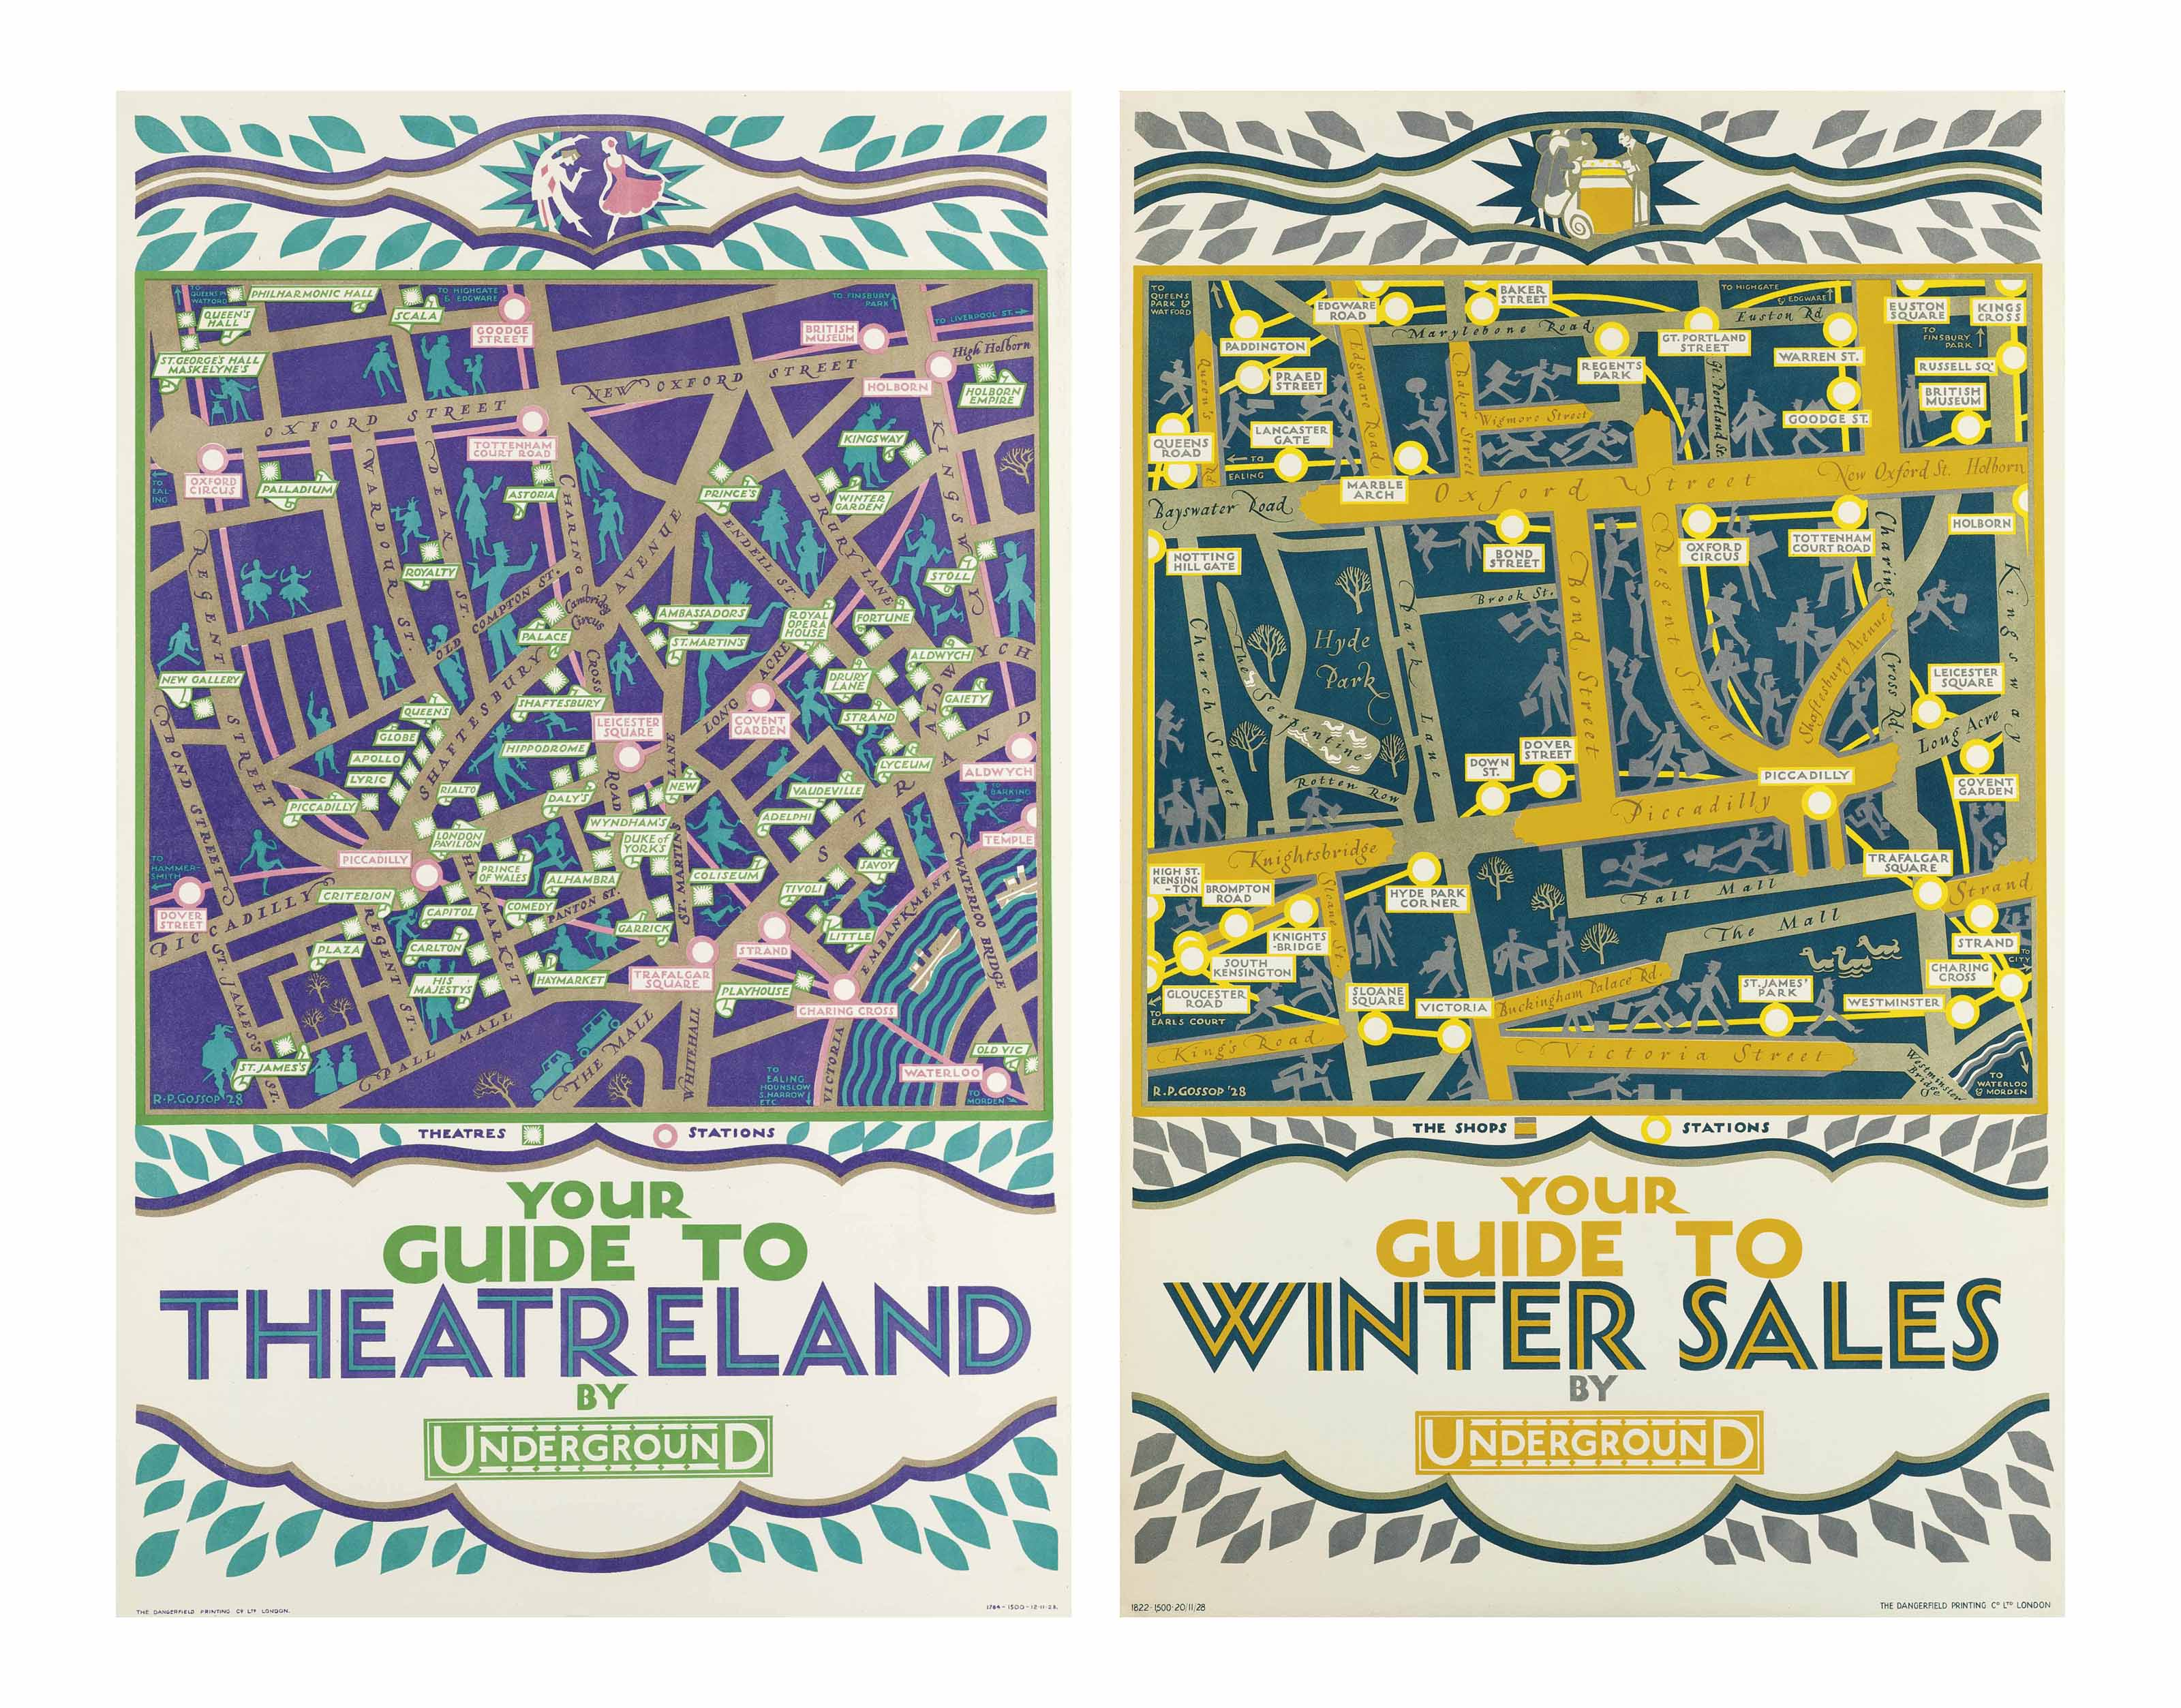 'YOUR GUIDE TO THEATRELAND' & 'YOUR GUIDE TO WINTER SALES'